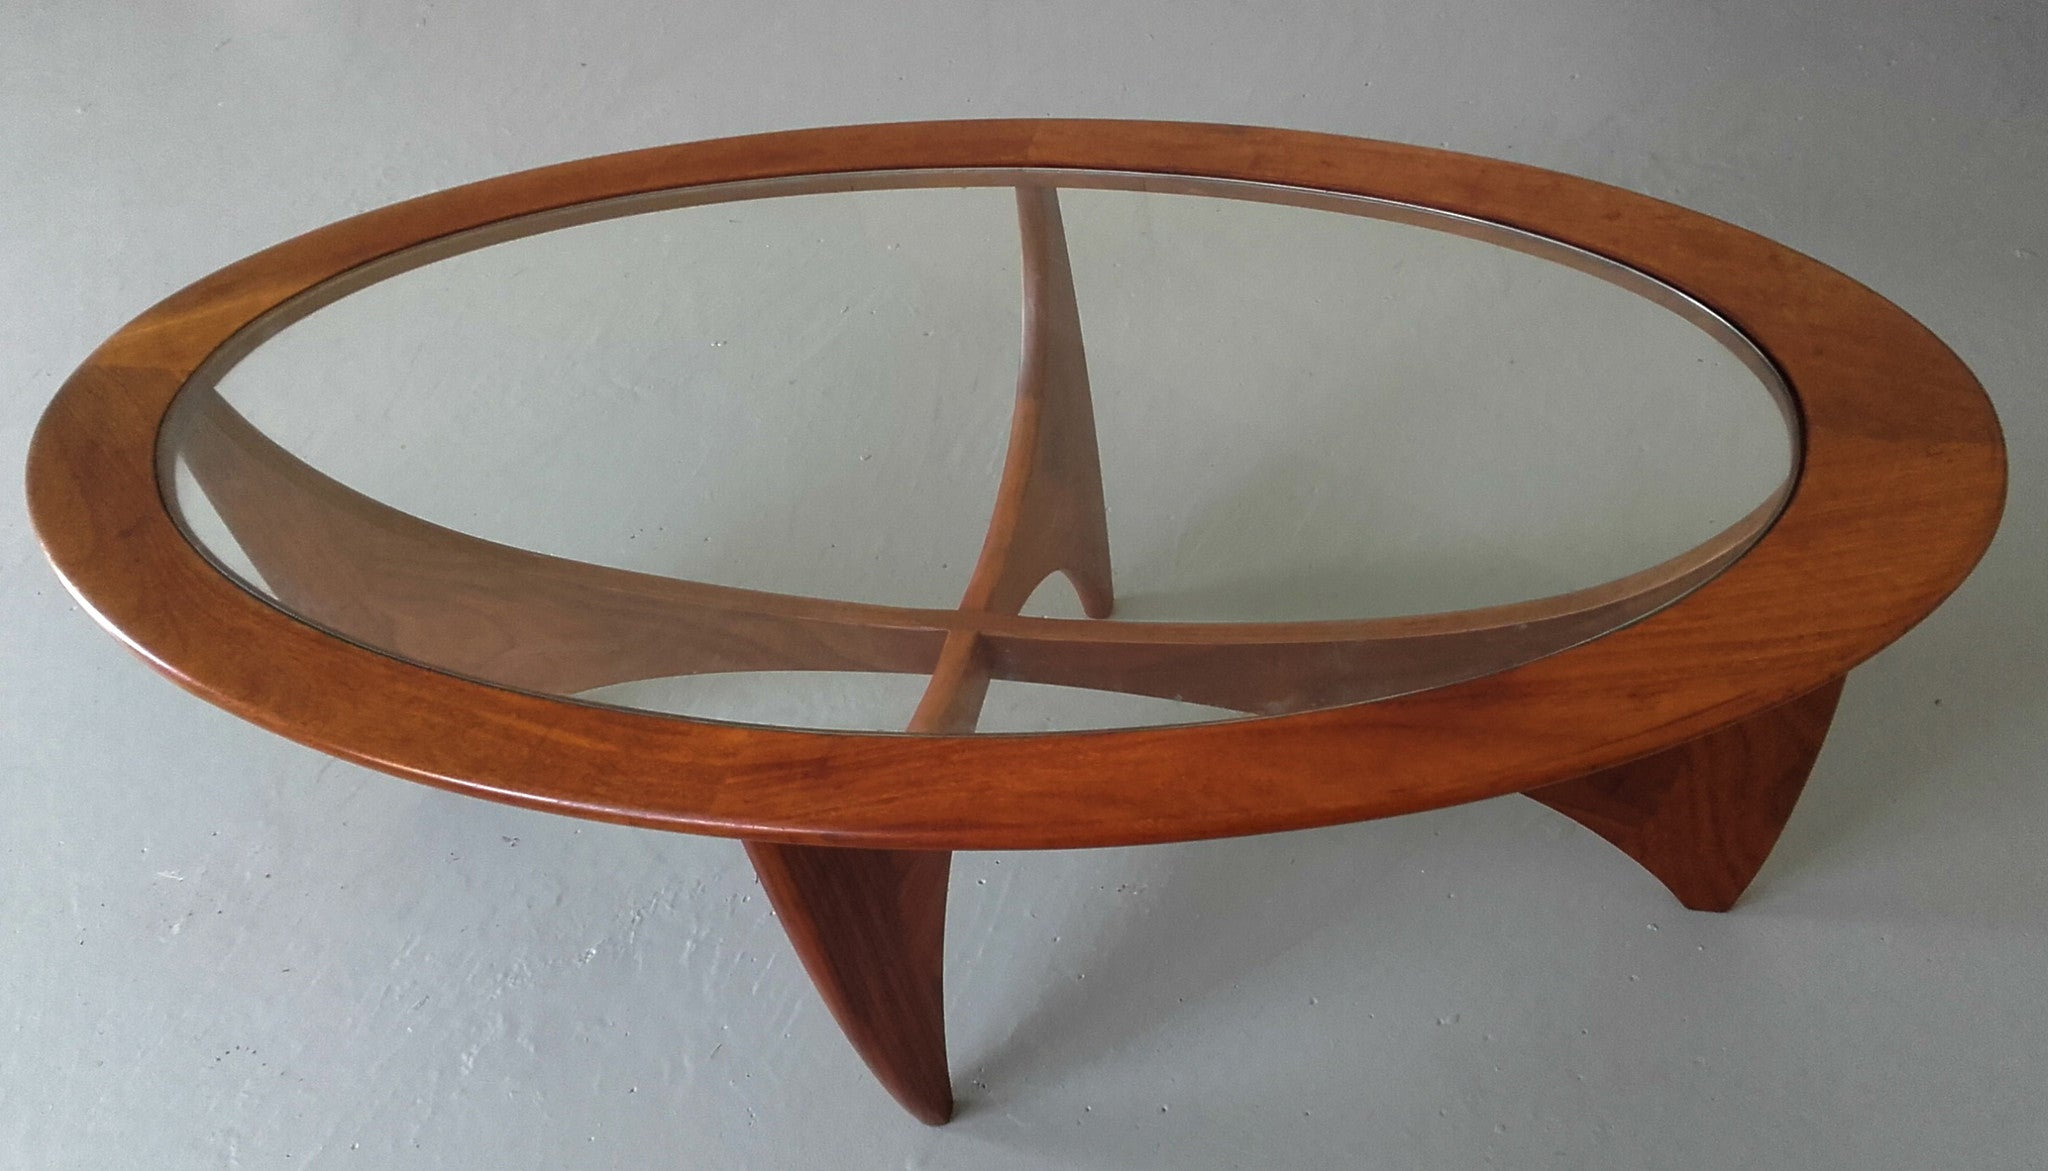 Stunning G Plan Oval Astro Teak & Glass Coffee Table – Whittaker